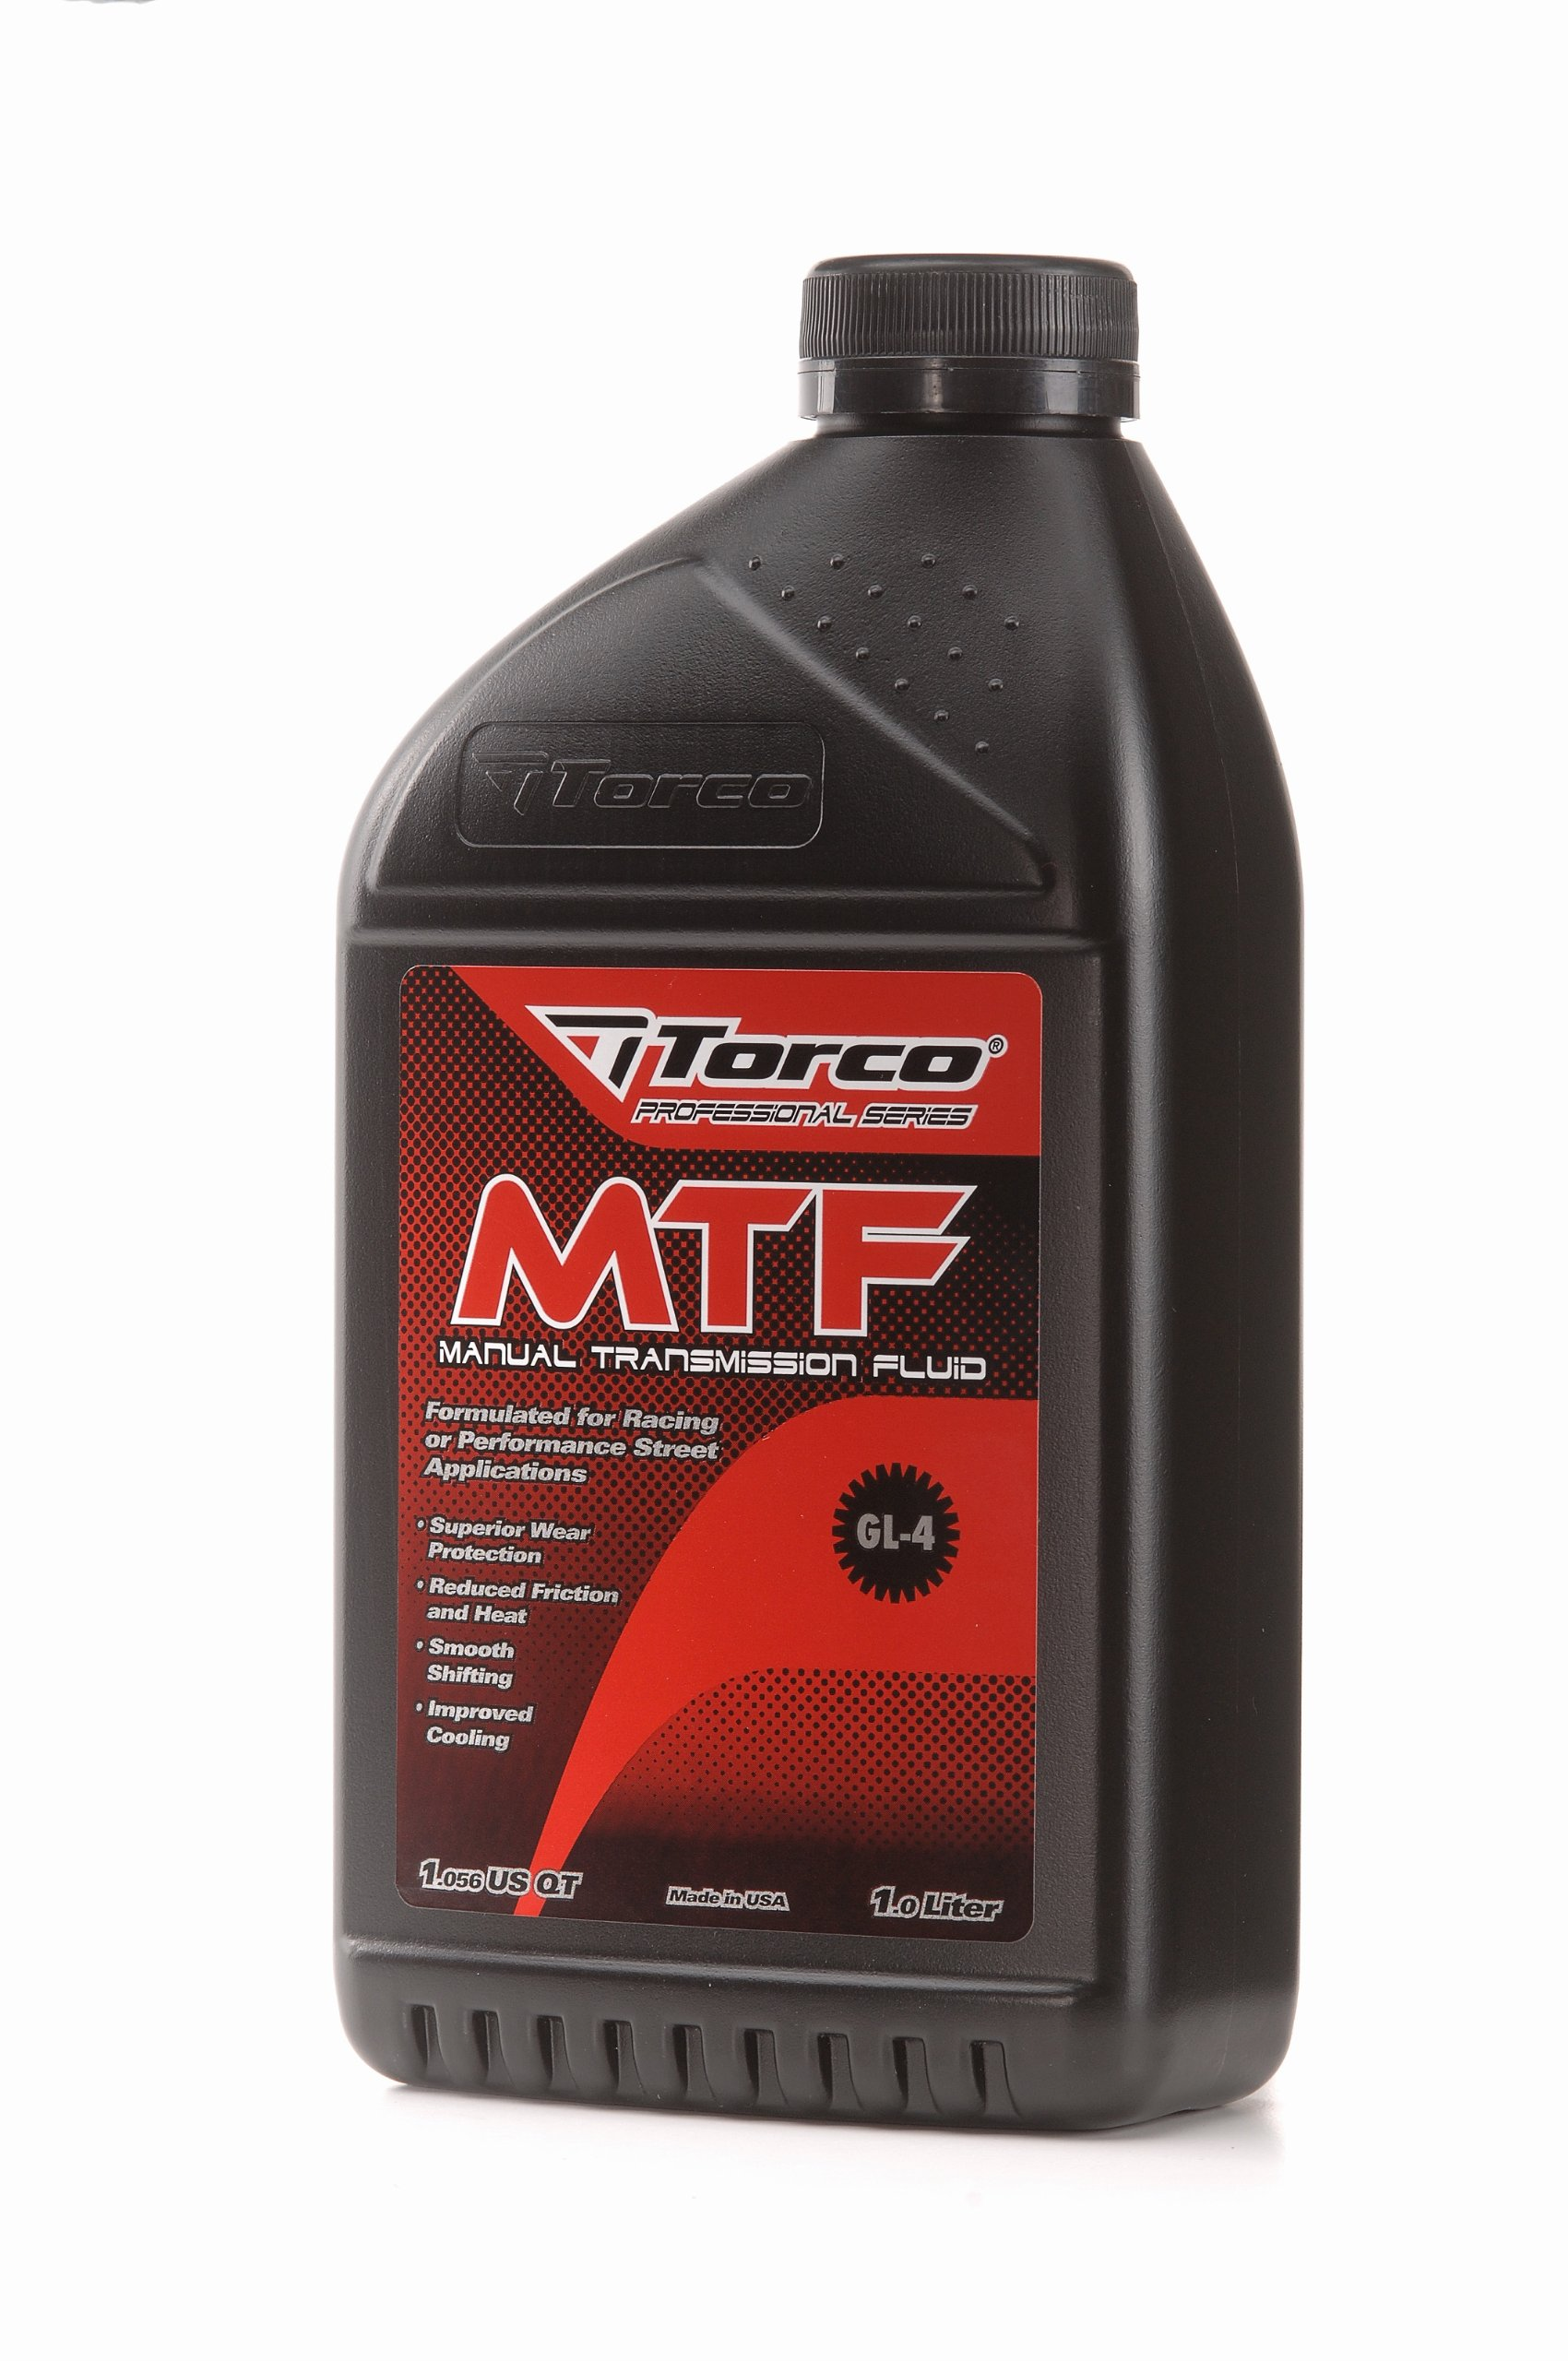 Torco A200022C MTF Manual Transmission Fluid Bottle - 1 Liter, (Case of 12)